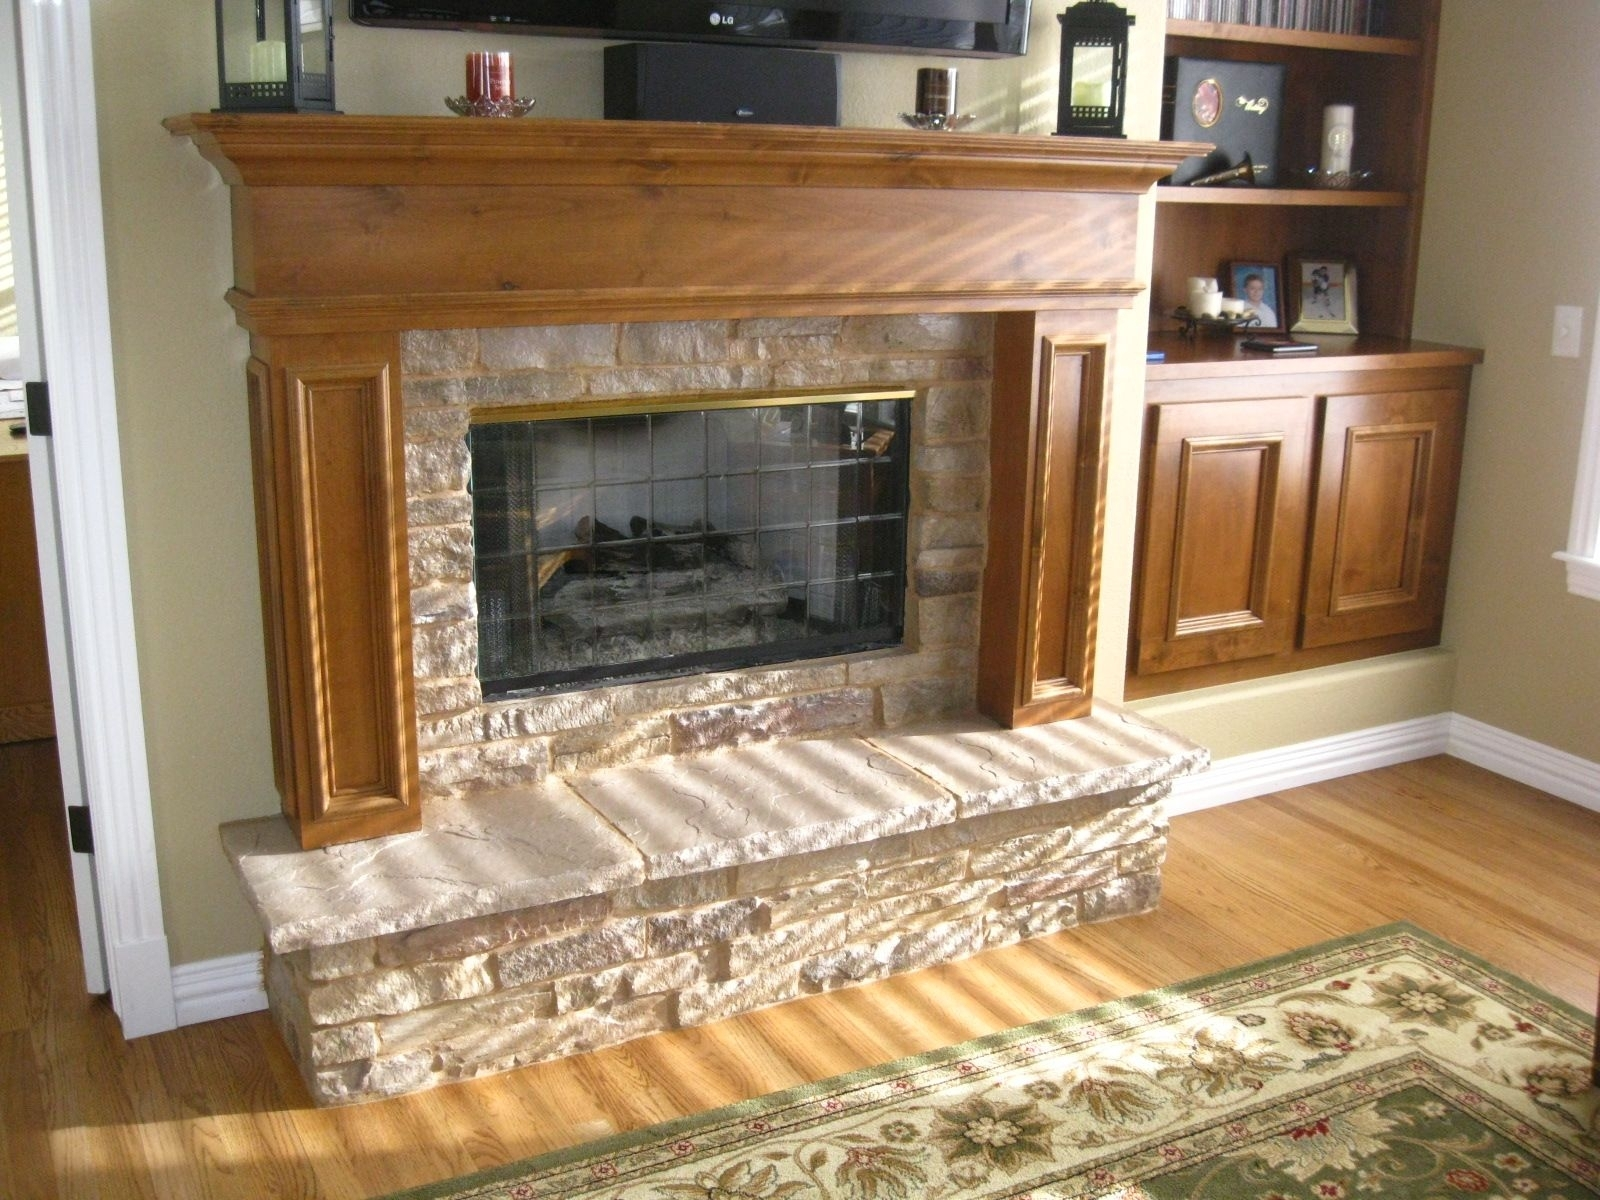 Image of: The 2006 Irc Fireplace Hearth Code Junsaus Fireplace Hearth Code For Fake Outdoor Fireplace Build Fake Outdoor Fireplace